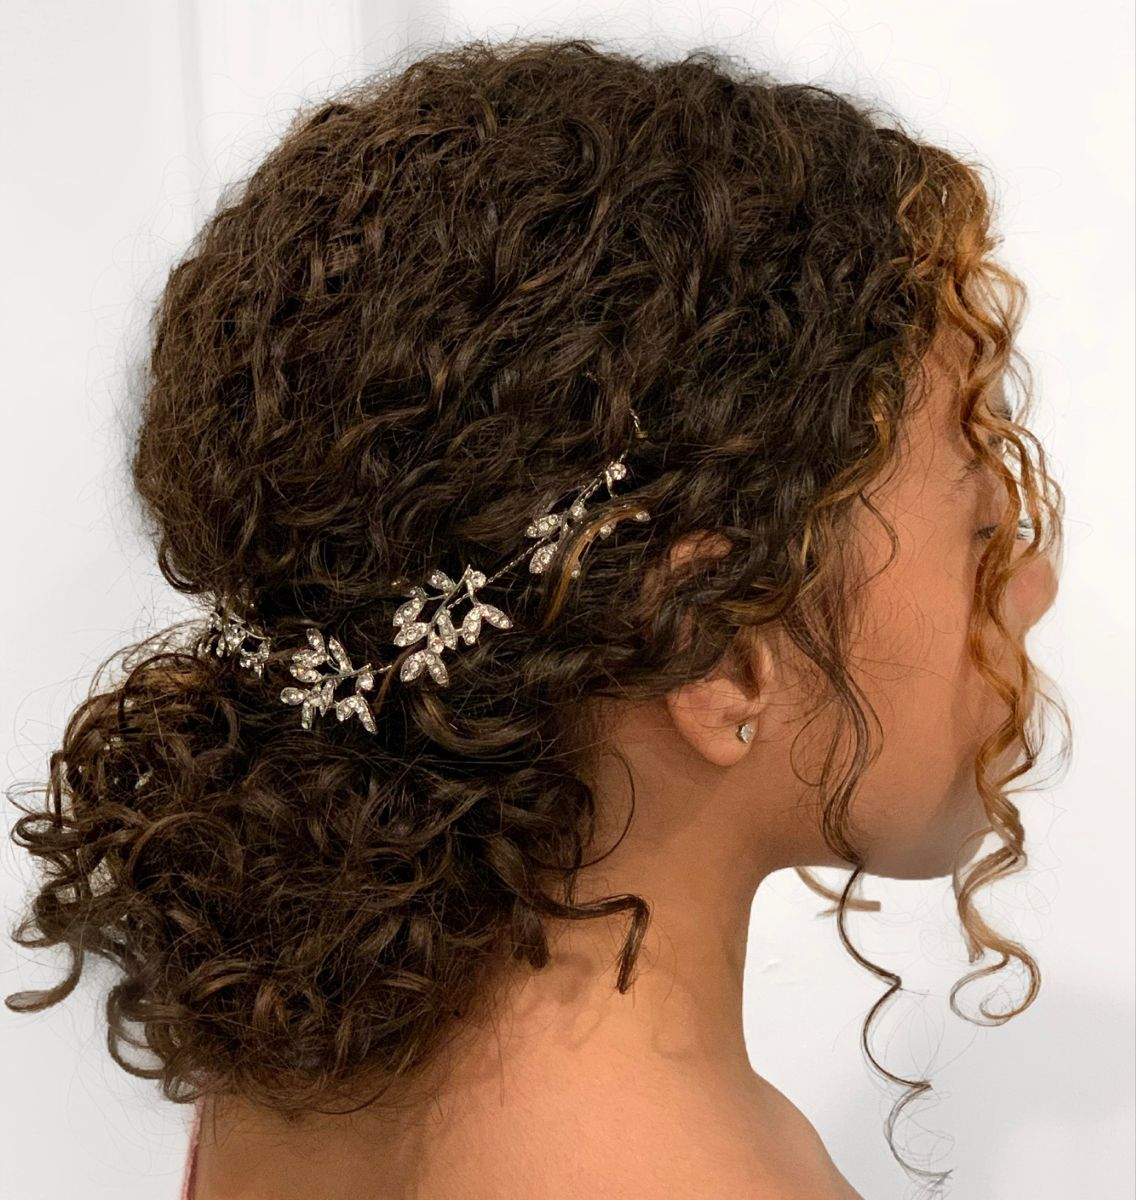 Hair Salon Luxe Beauty Room New Jersey In 2020 Flower Girl Hairstyles Updo Curly Hair Styles Naturally Curly Girl Hairstyles